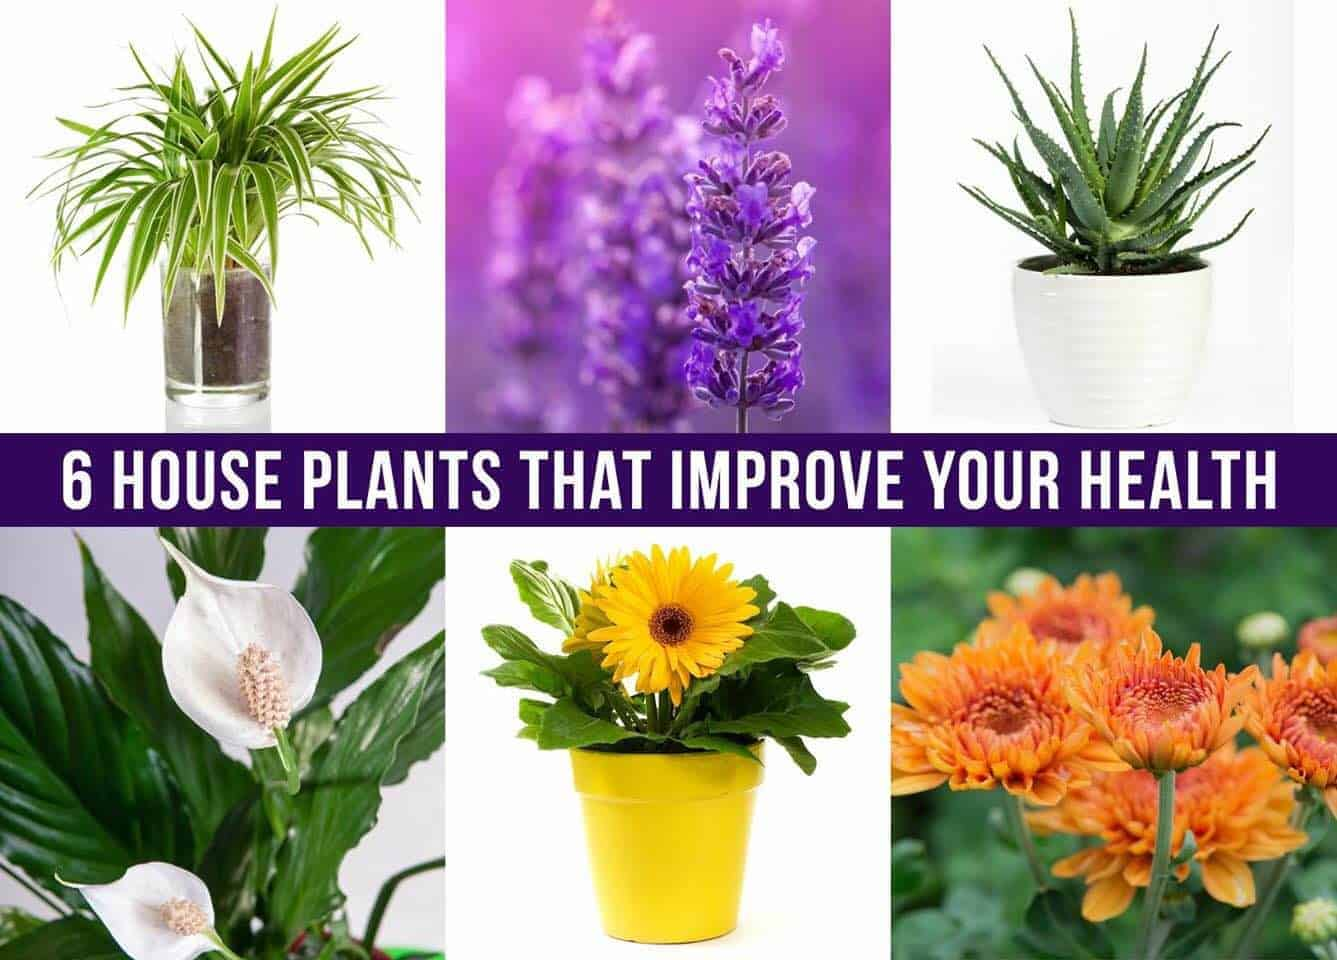 6 House Plants That Improve Your Health